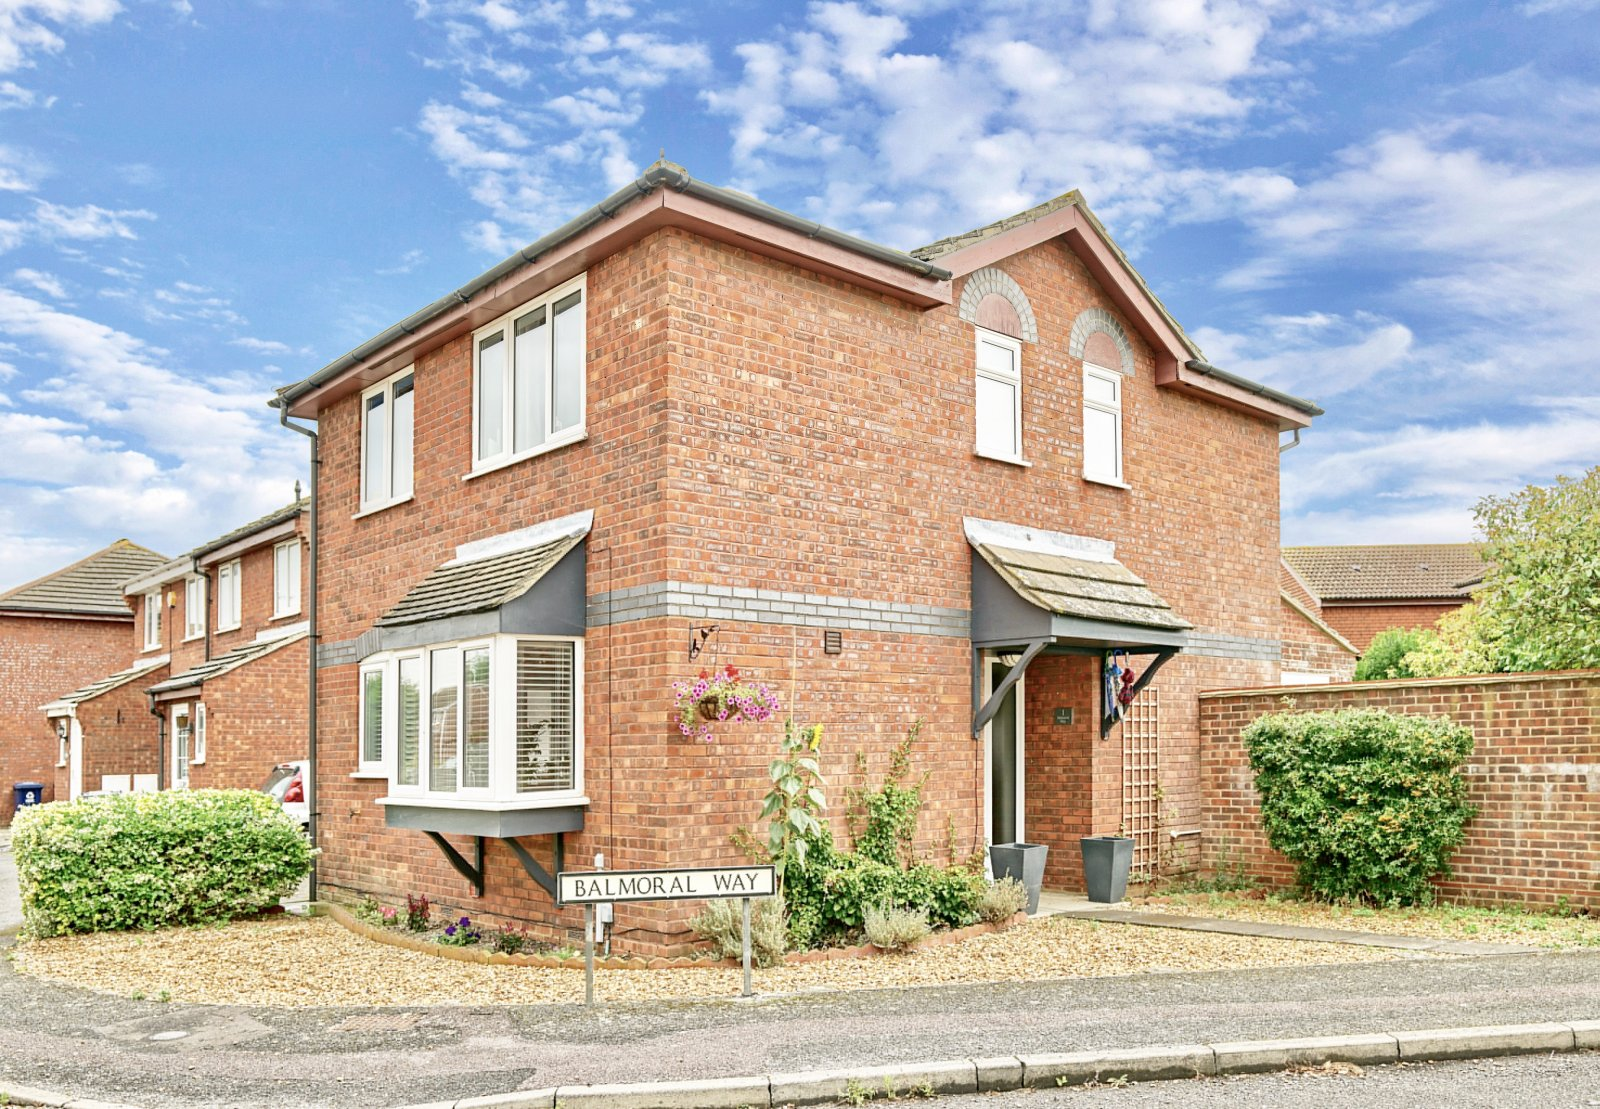 3 bed house for sale in Eynesbury, Balmoral Way, PE19 2RJ 0